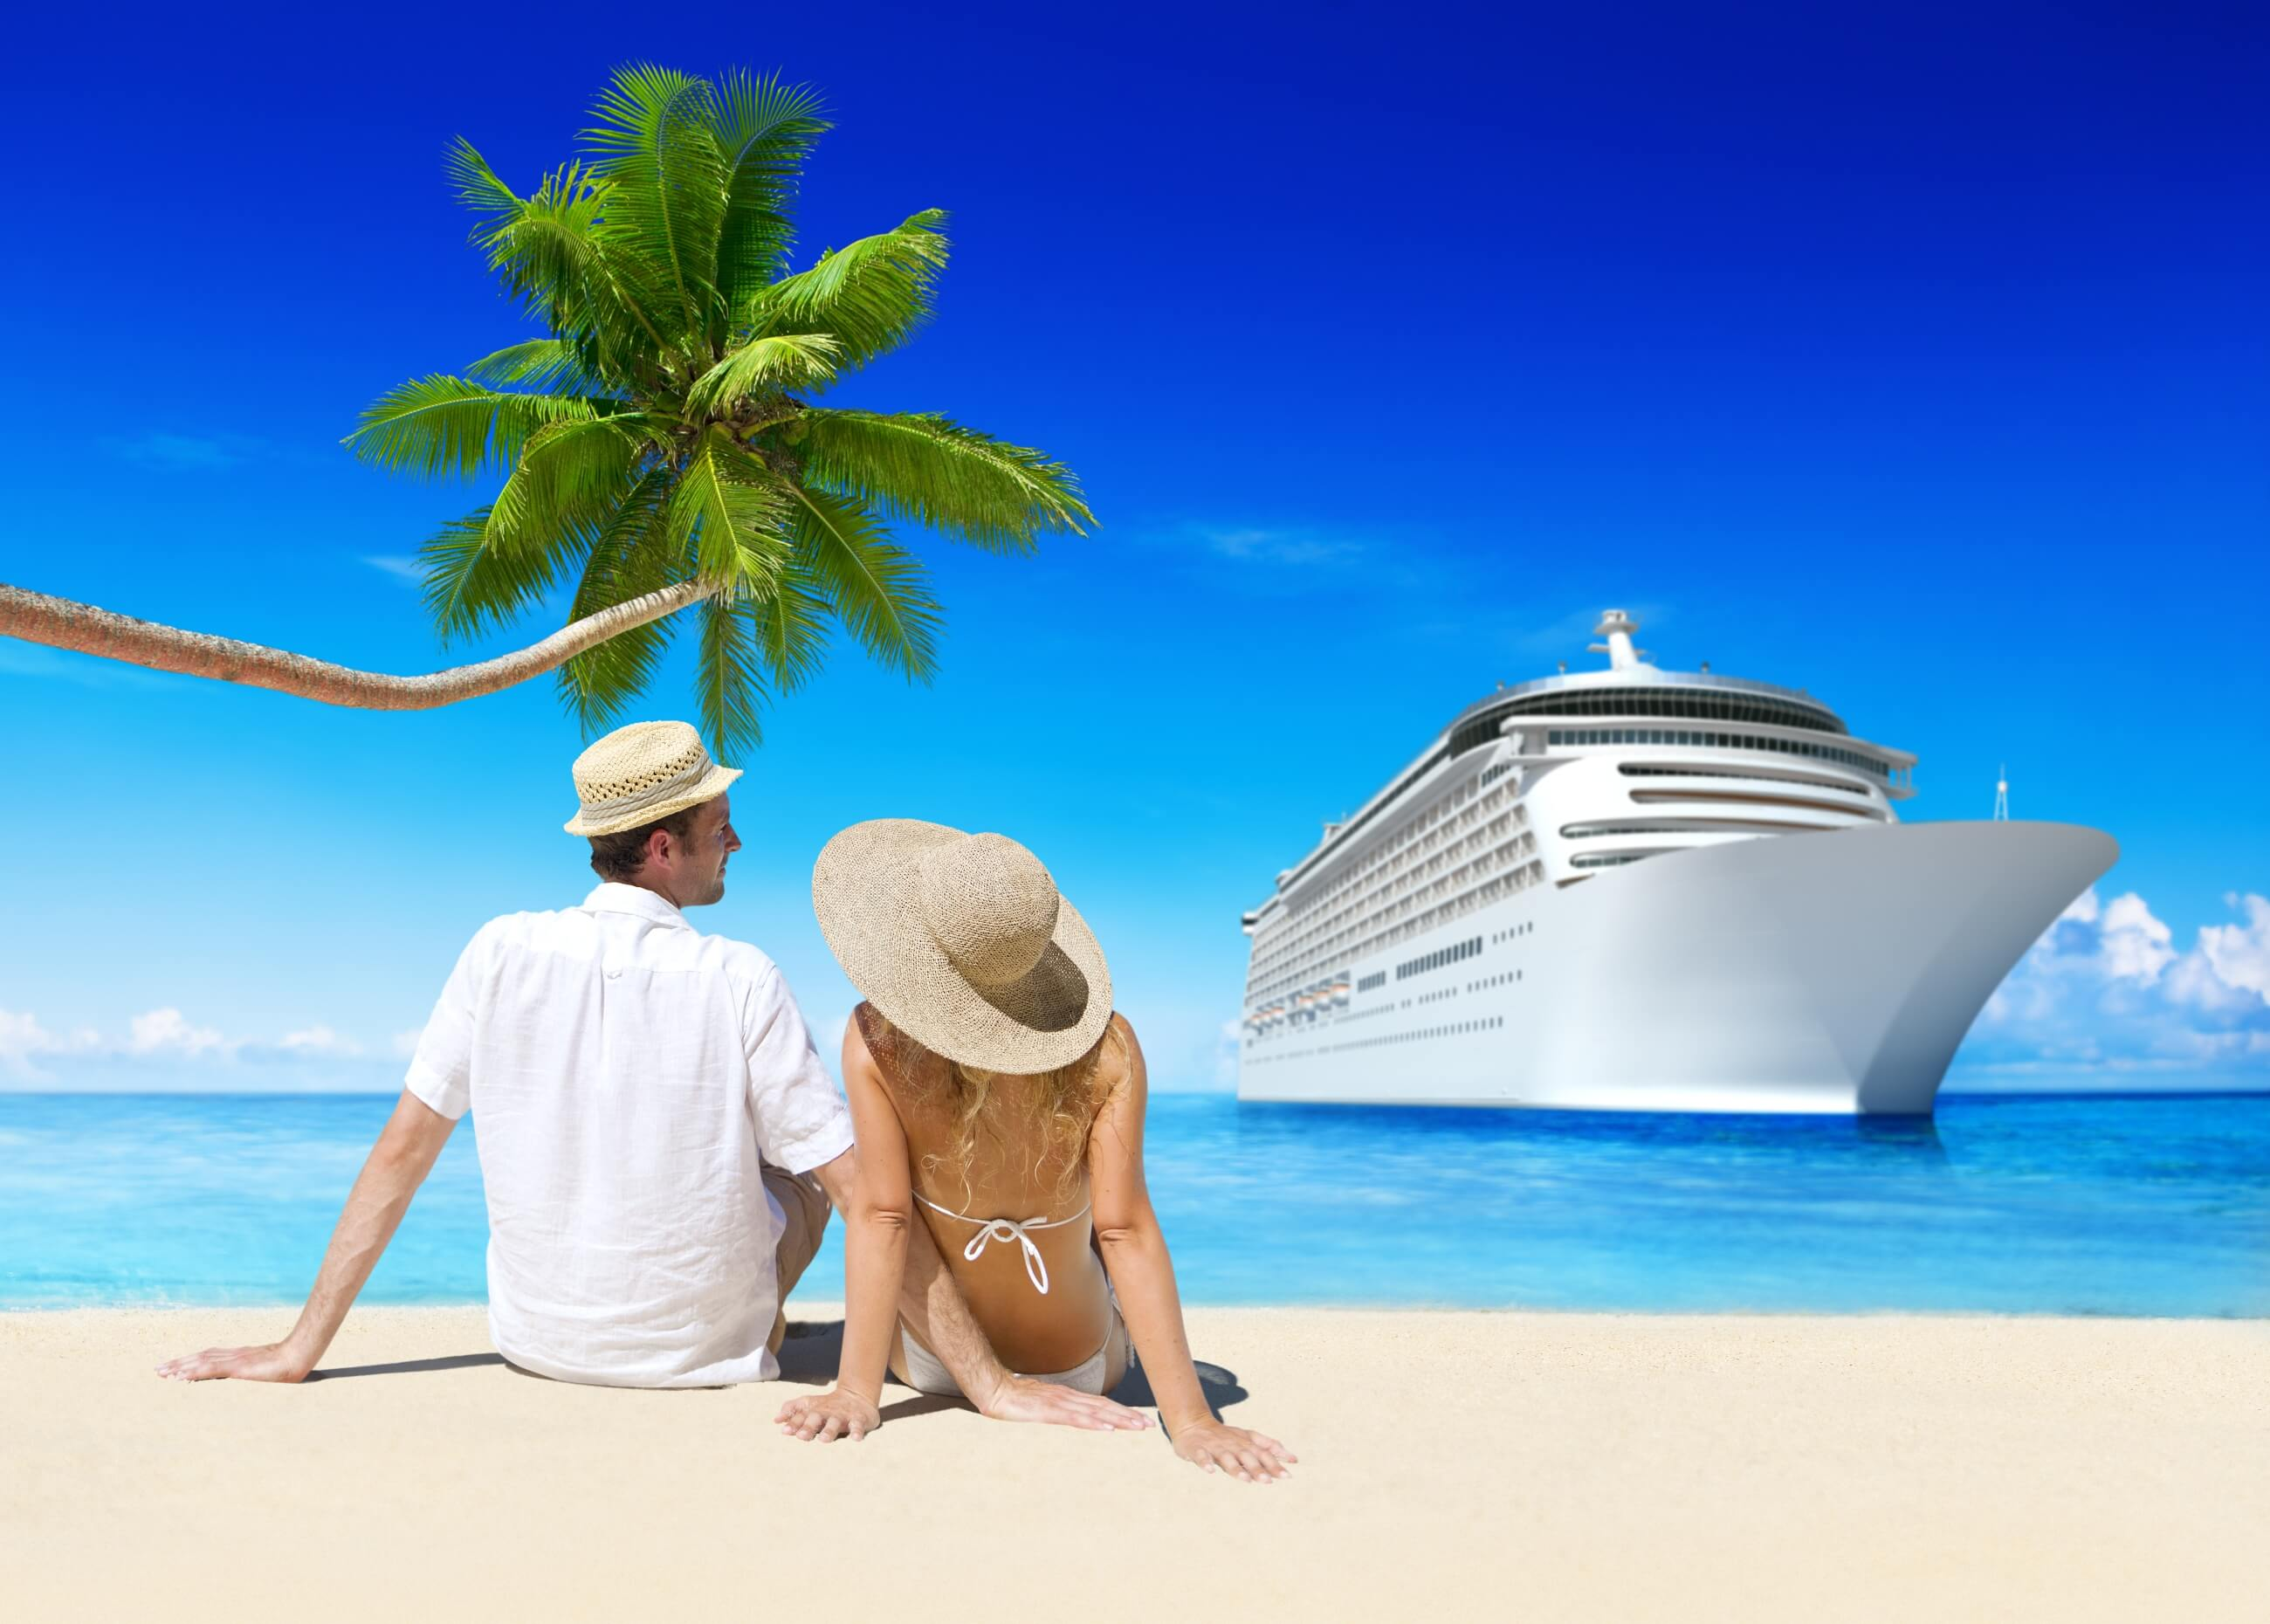 Romantic Vacation Cruises  A Good Choice For a Romantic